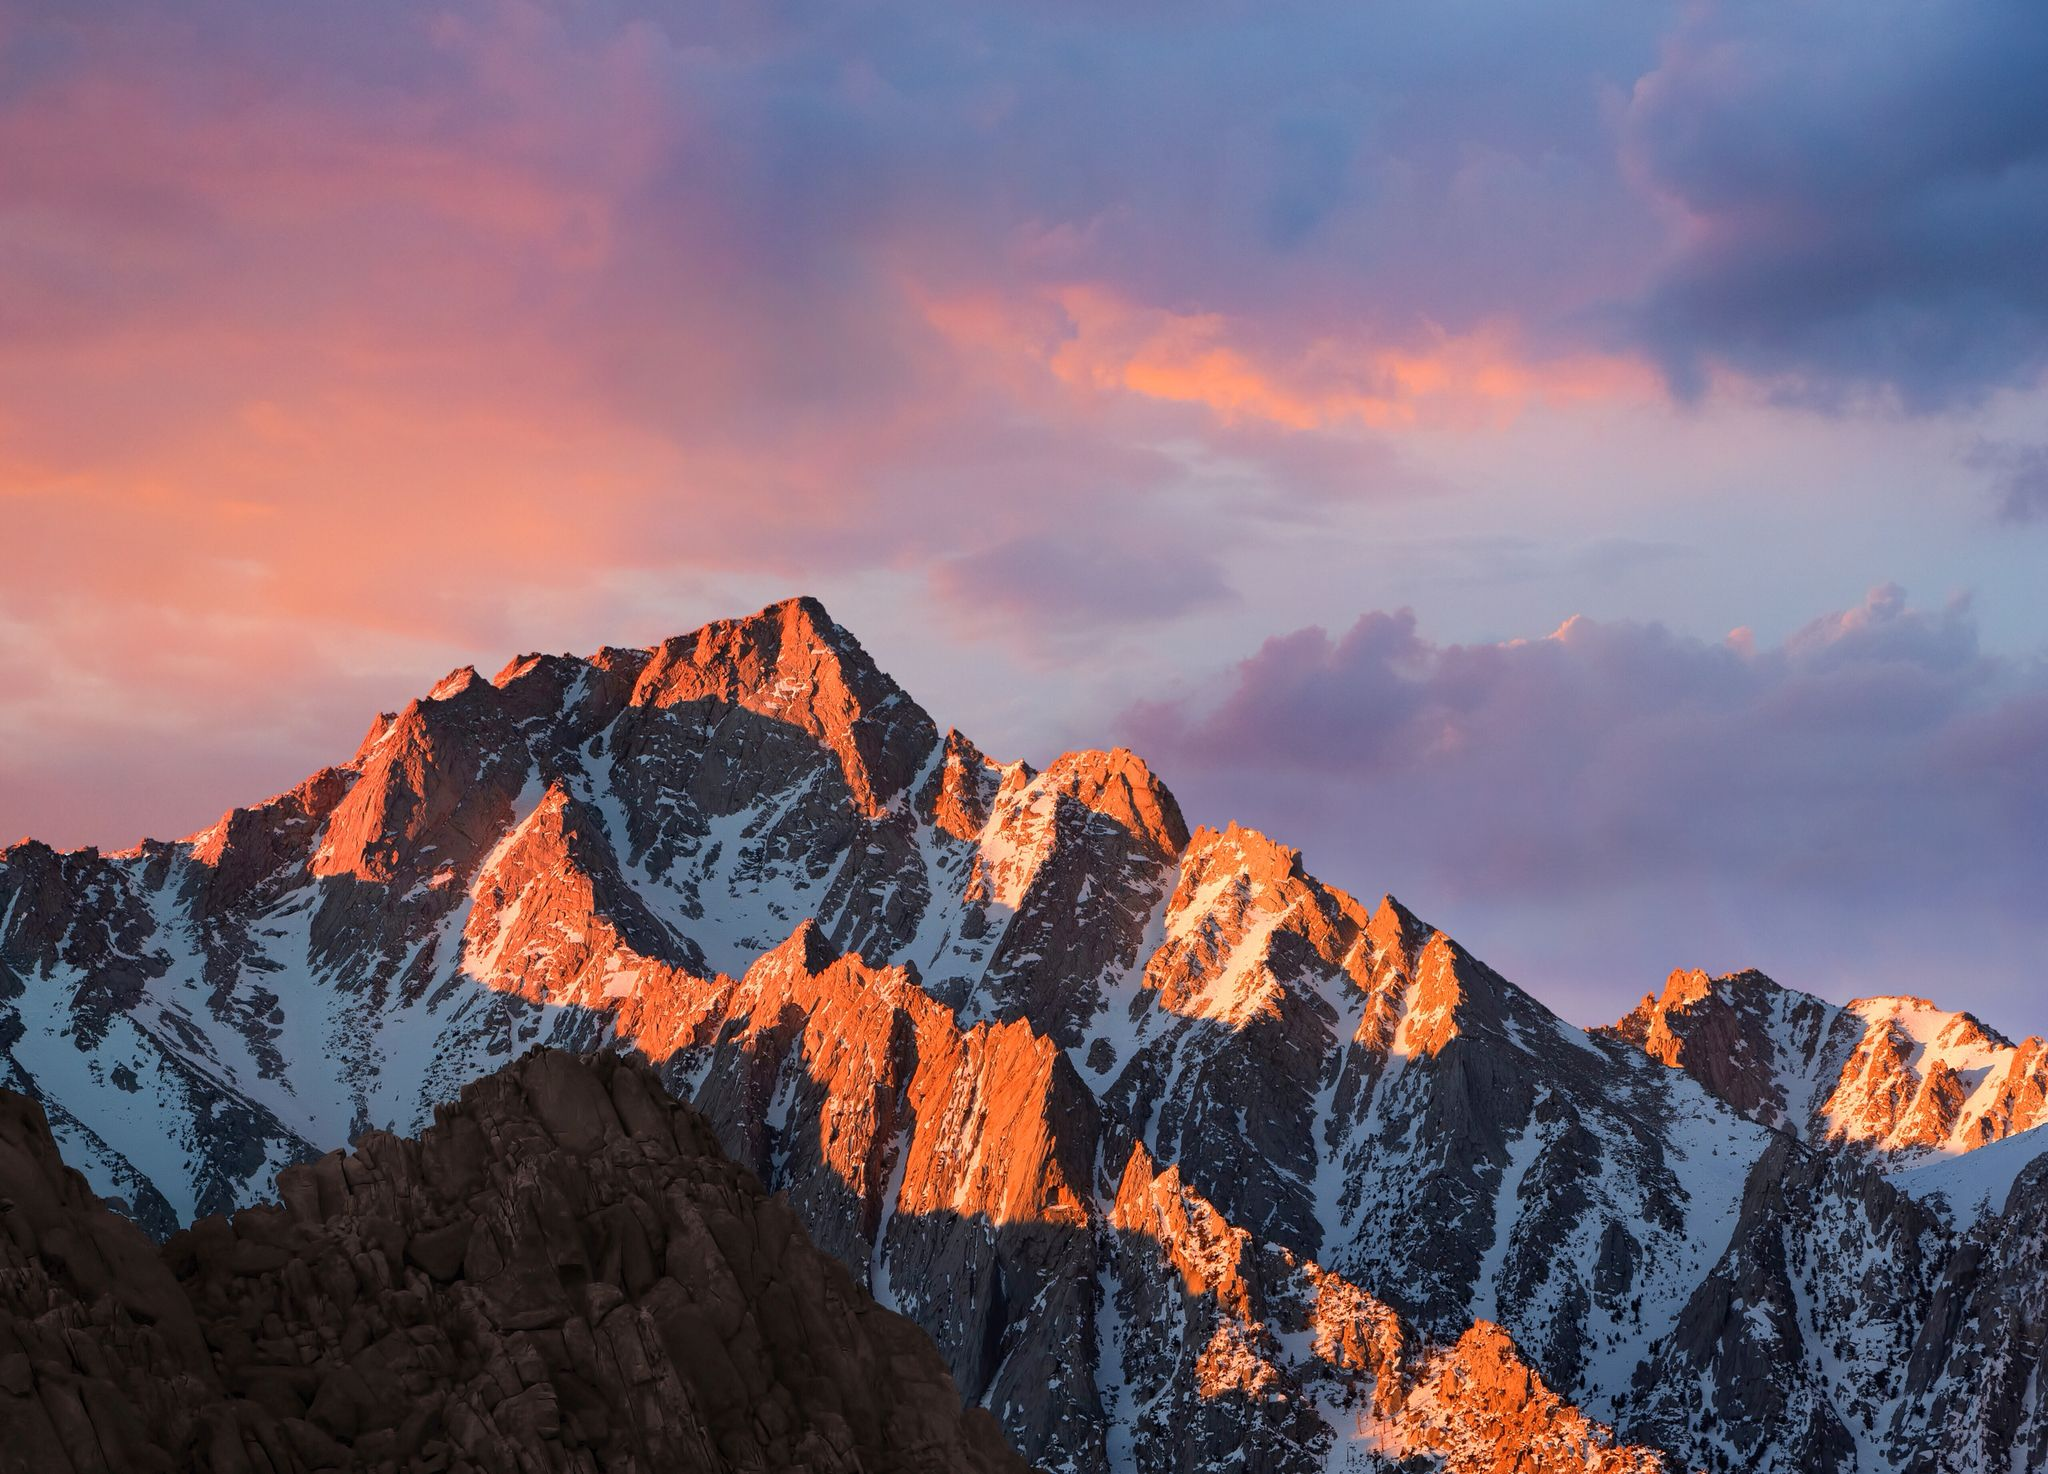 Macos Sierra 4k Wallpaper In 2020 Macos Sierra Wallpaper